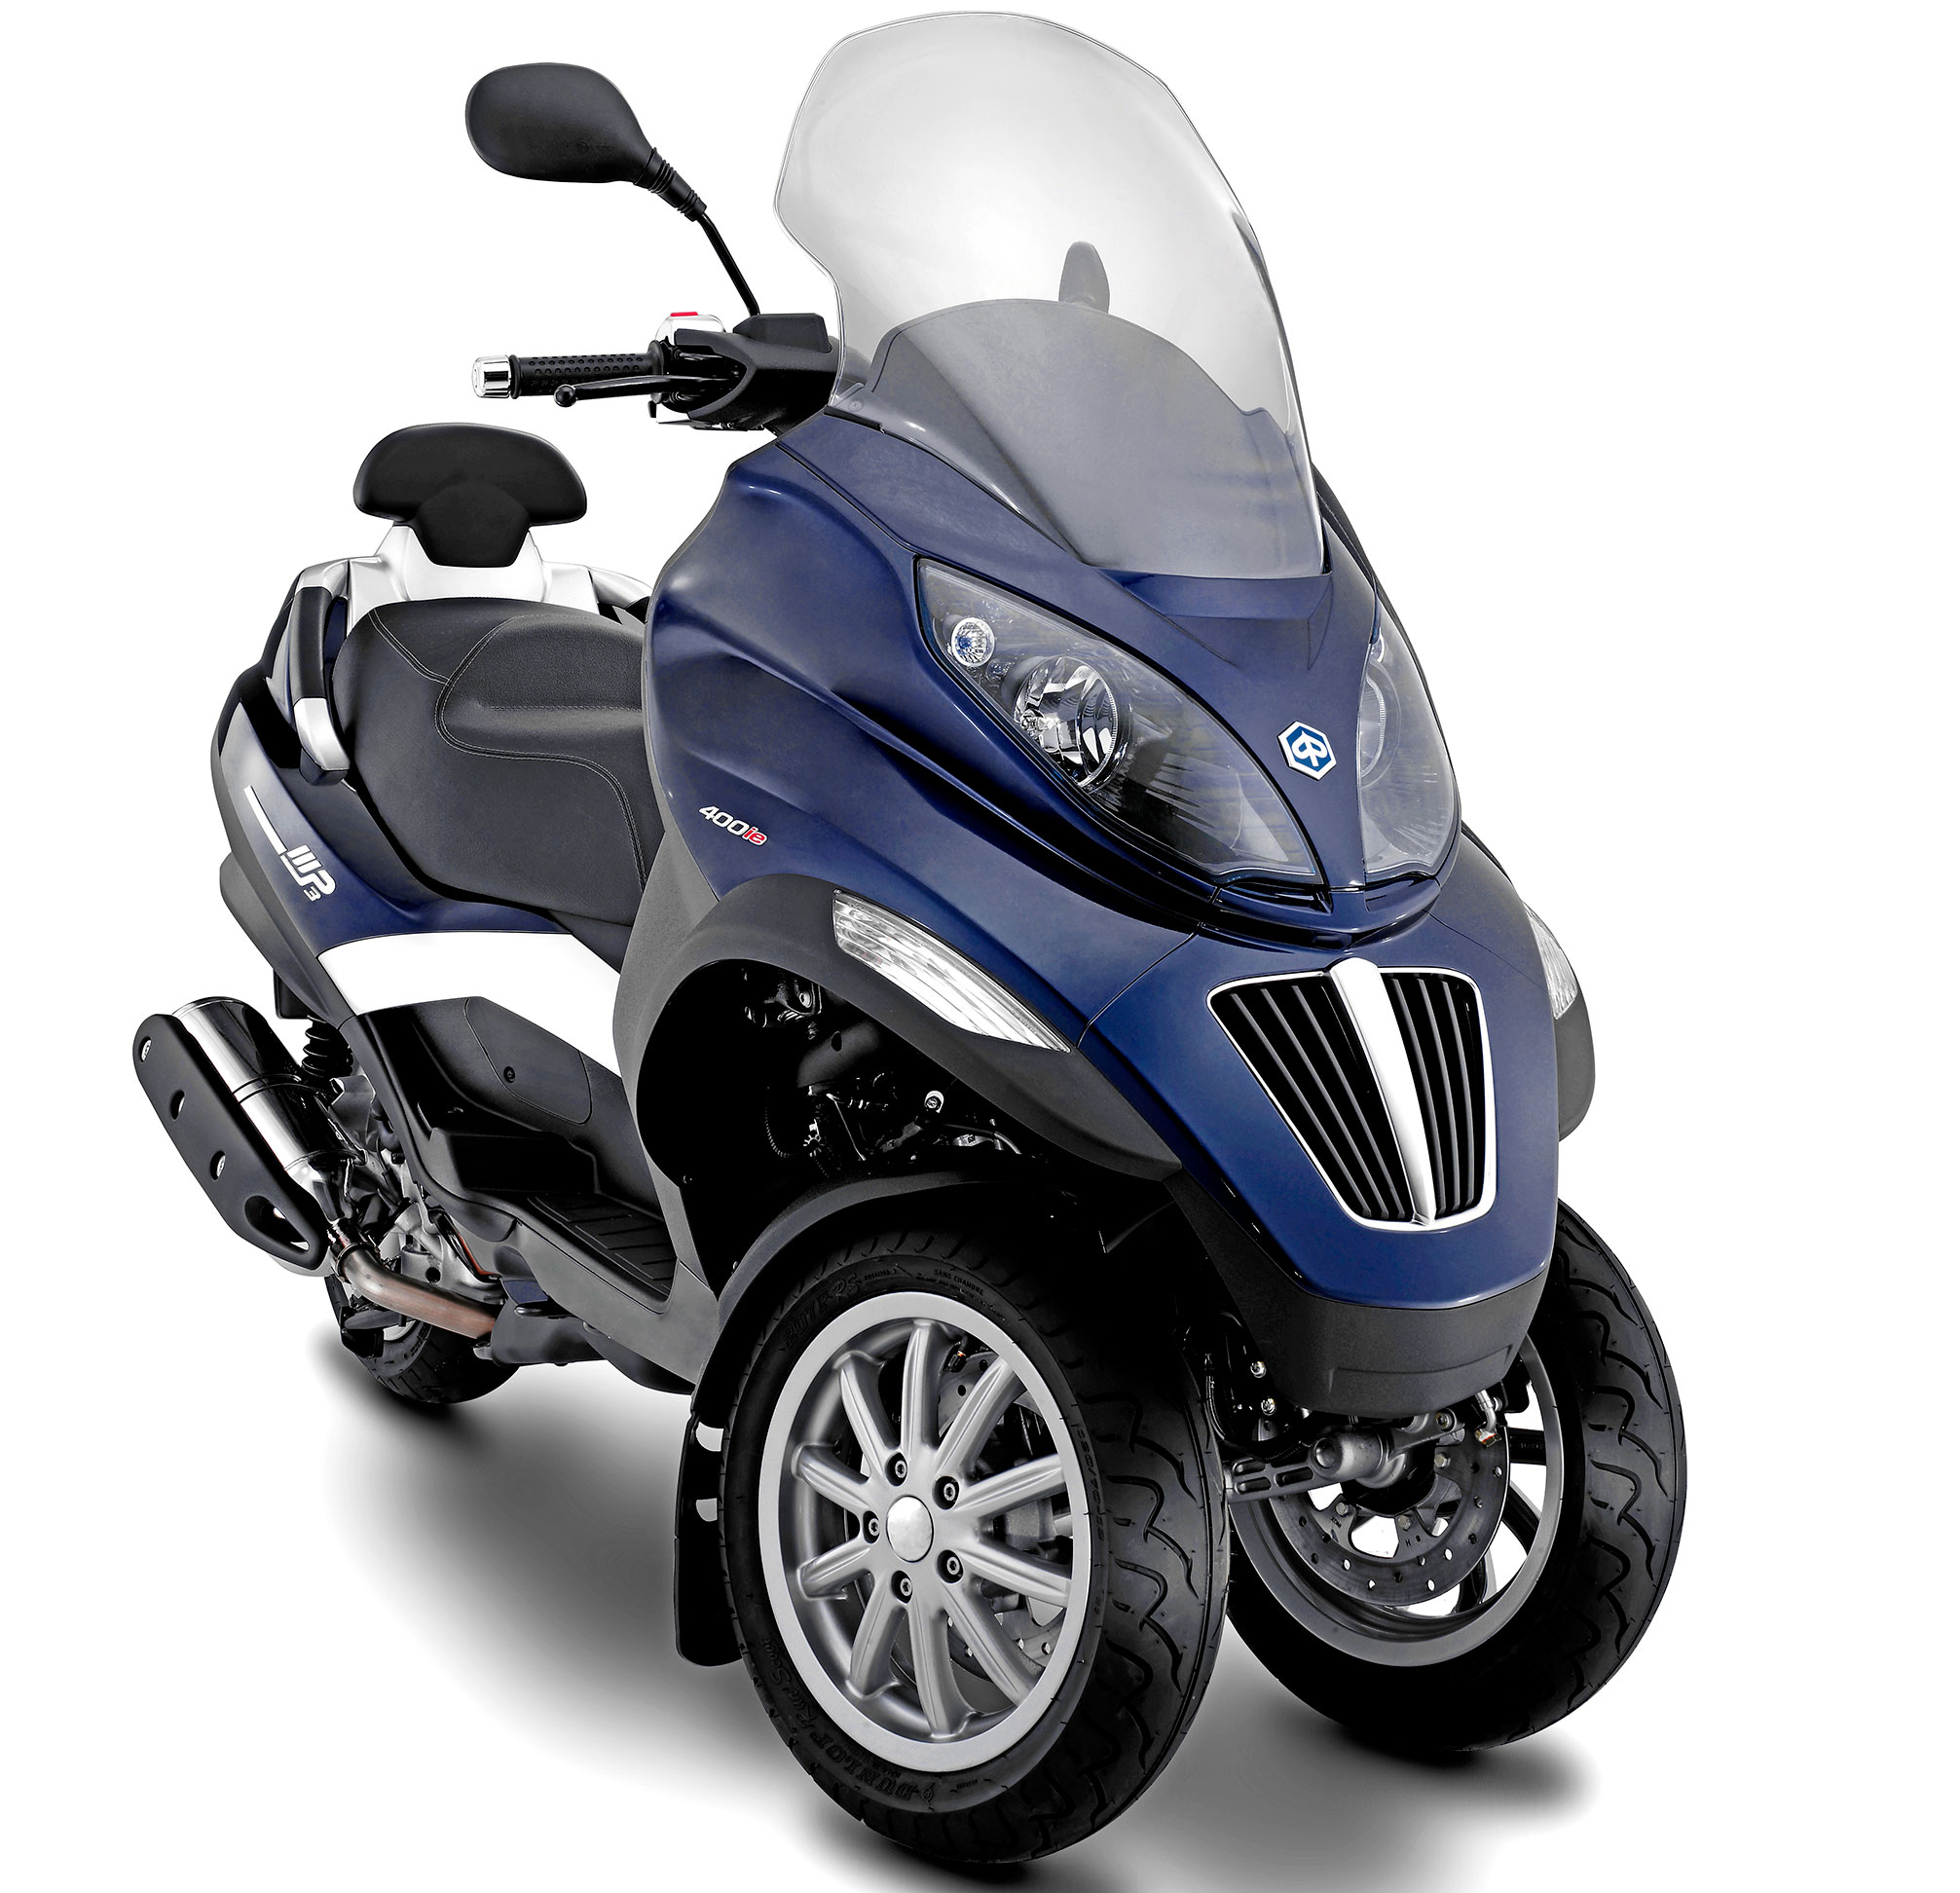 piaggio mp3 400 specs 2012 2013 autoevolution. Black Bedroom Furniture Sets. Home Design Ideas